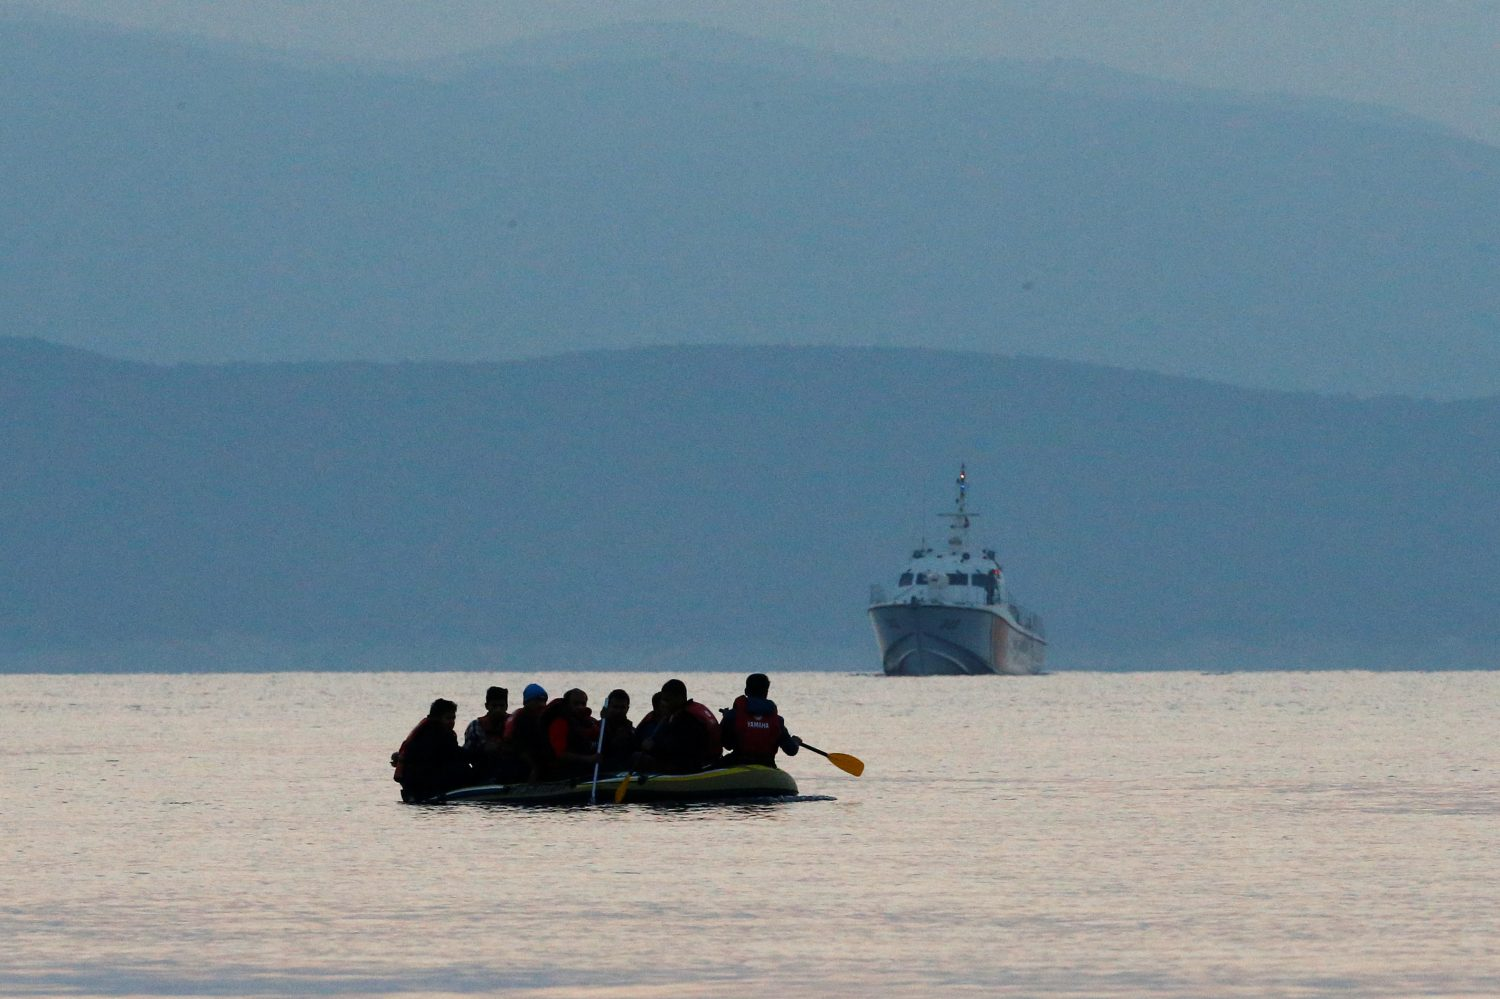 FILE PHOTO: Migrants in a dinghy paddle their way on the Mediterranean Sea to attempt crossing to the Greek island of Kos, as a Turkish Coast Guard ship patrols off the shores off Bodrum, Turkey, September 19, 2015. REUTERS/Umit Bektas/File Photo